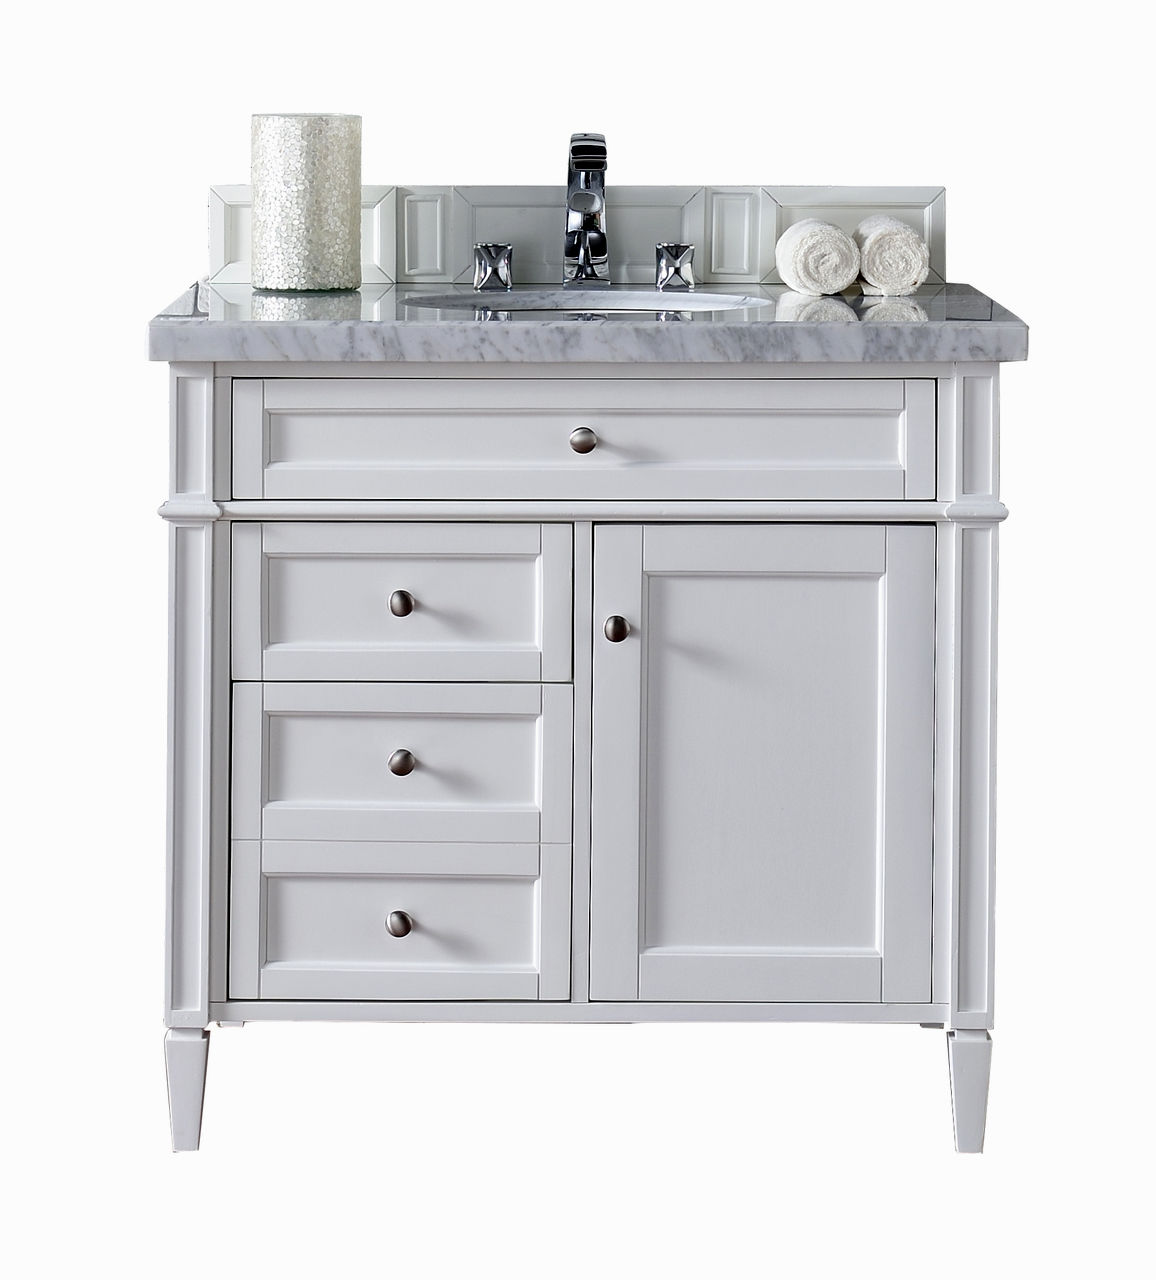 cool 24 bathroom vanity layout-Contemporary 24 Bathroom Vanity Layout